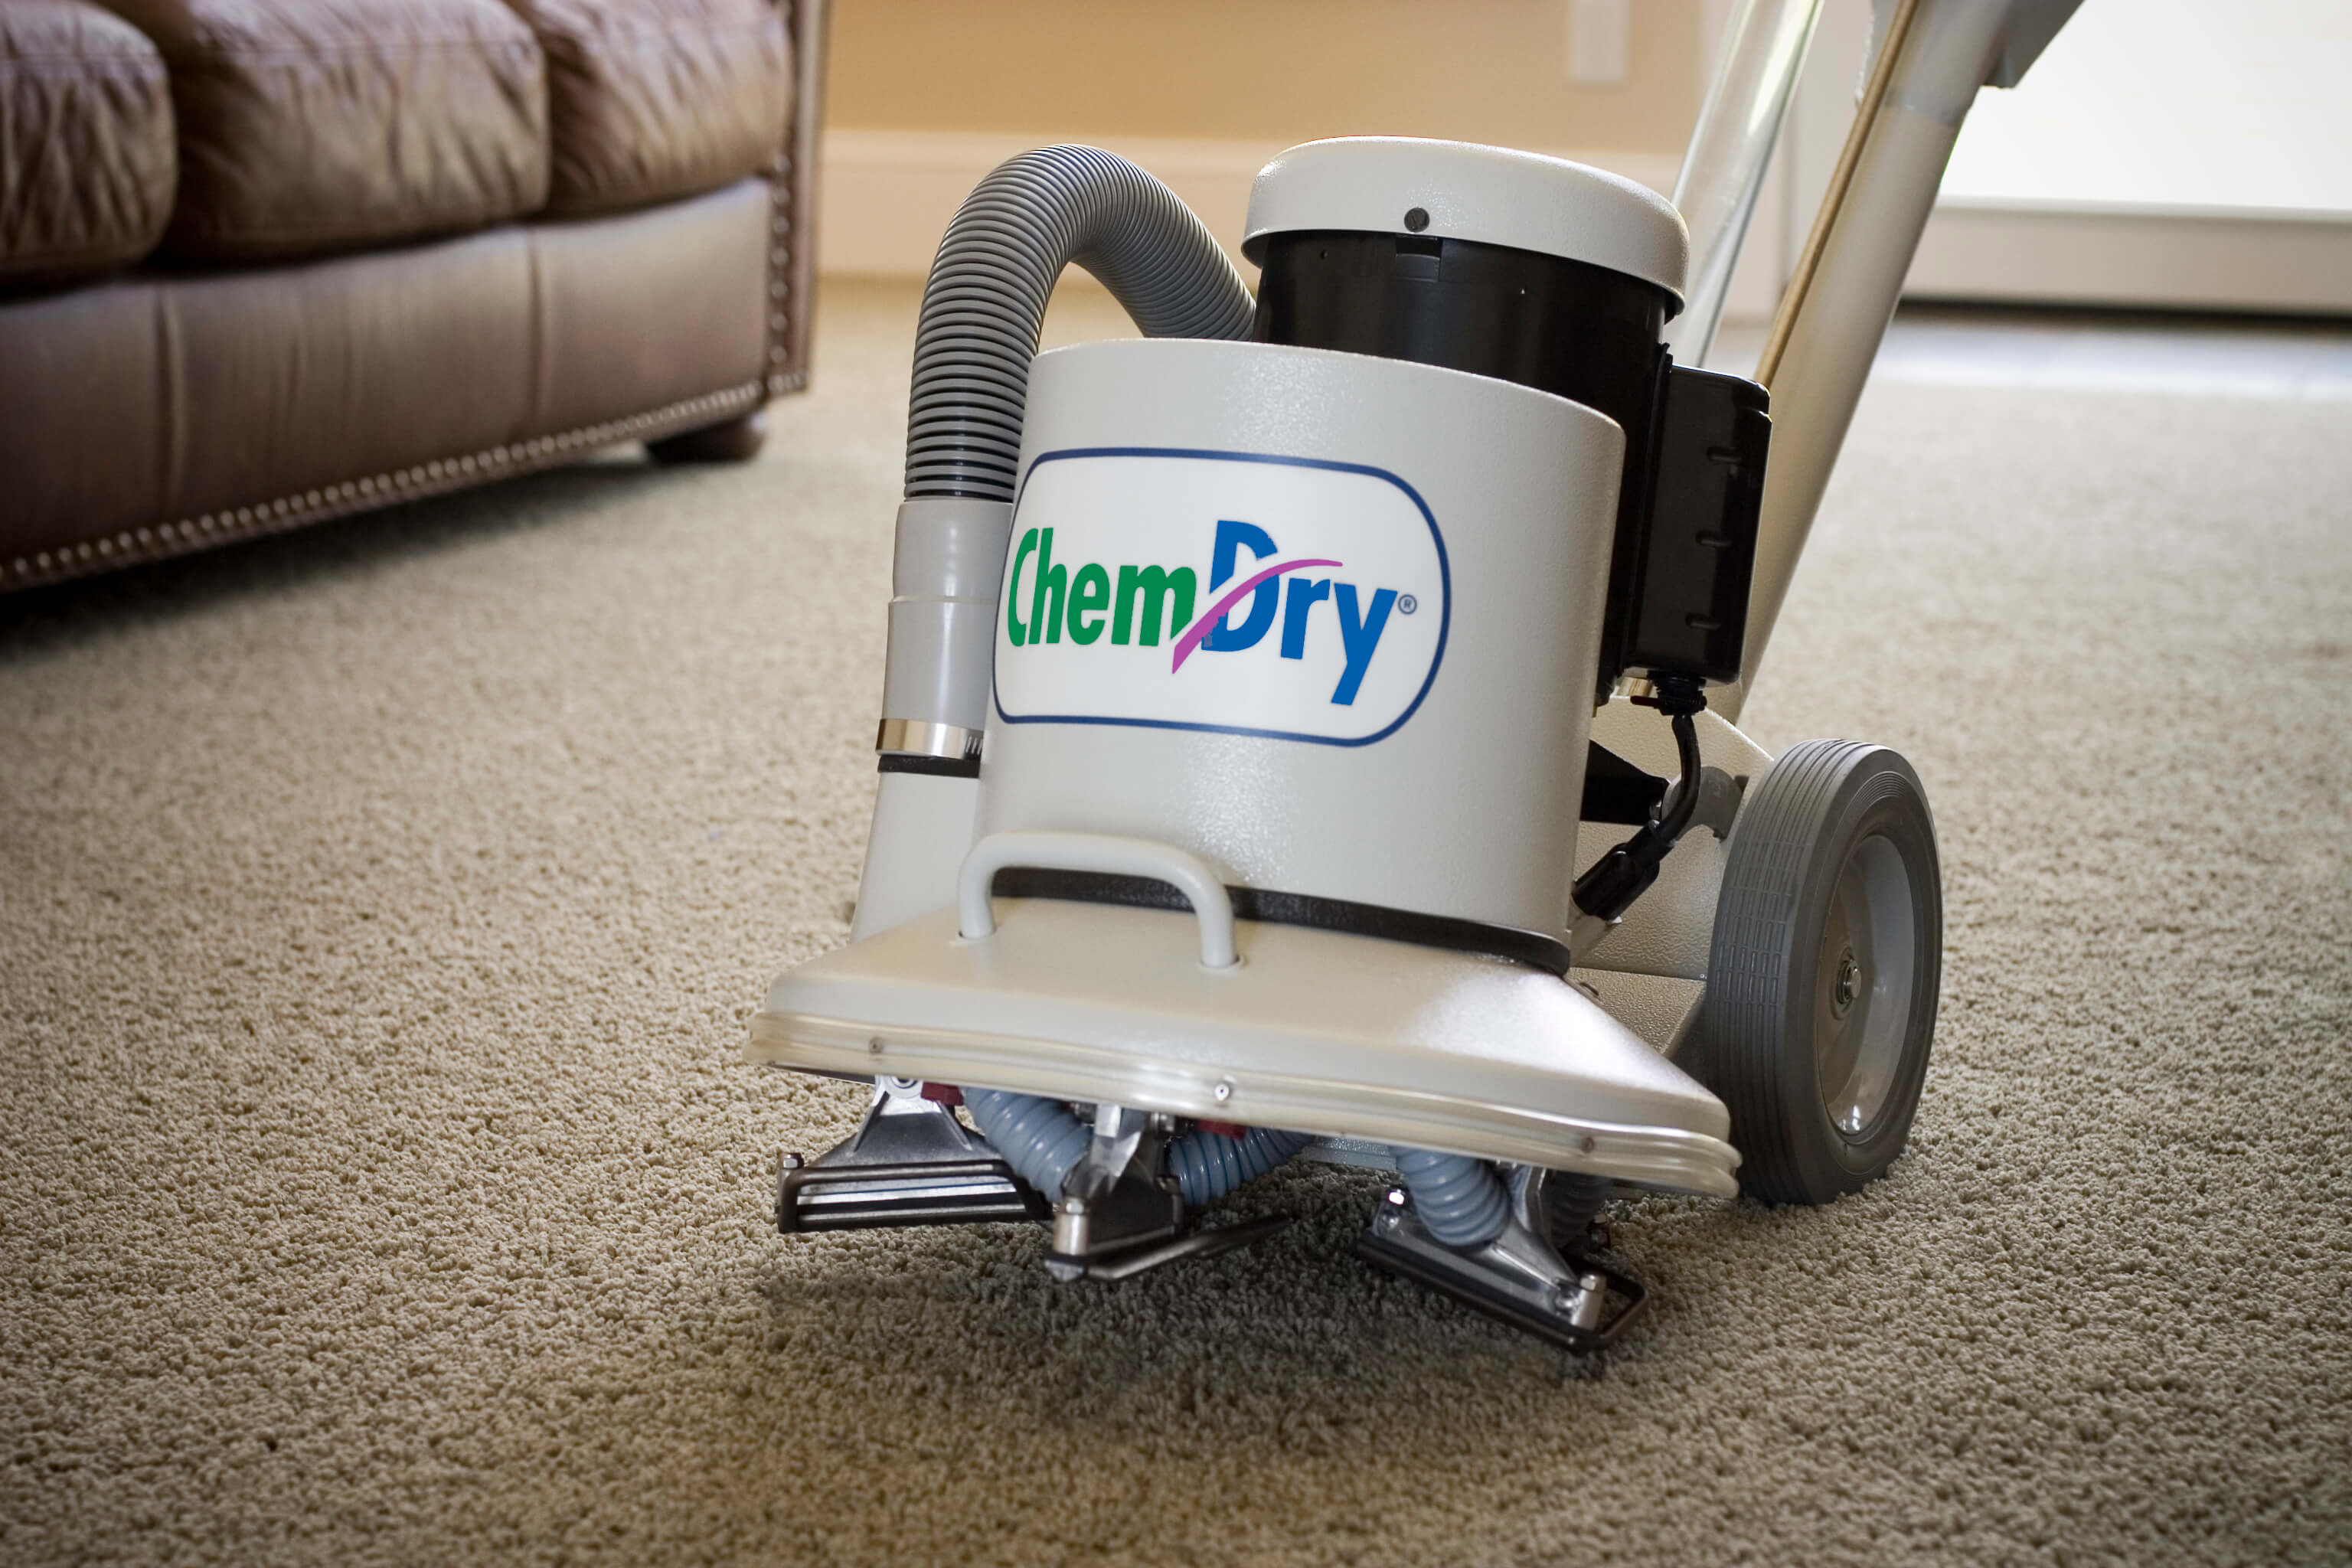 Chem-Dry carpet cleaning machine